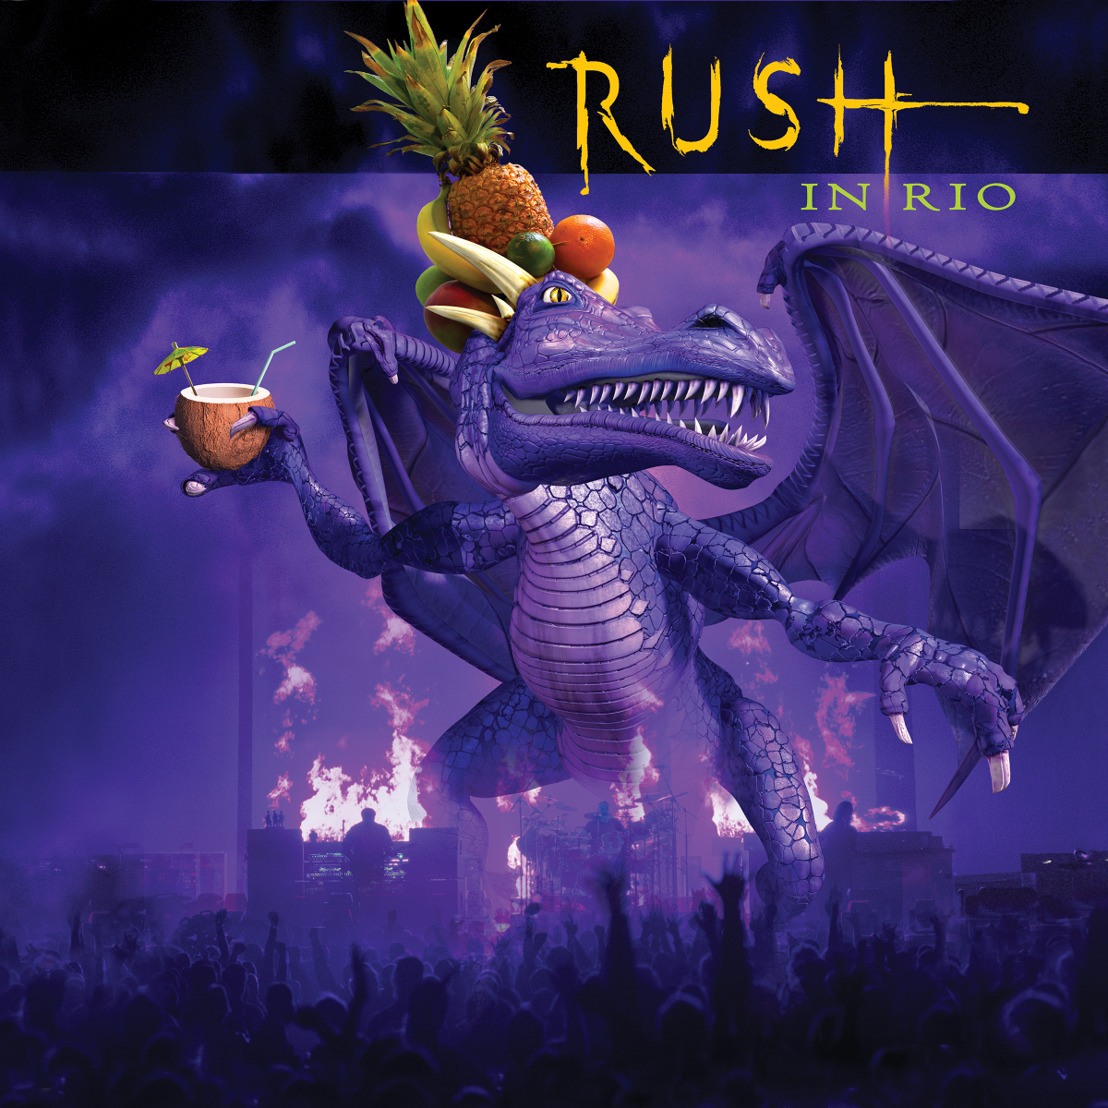 Rush in Rio Released on 180 Gram Vinyl. Package Includes New Liner Notes Essays and Photos